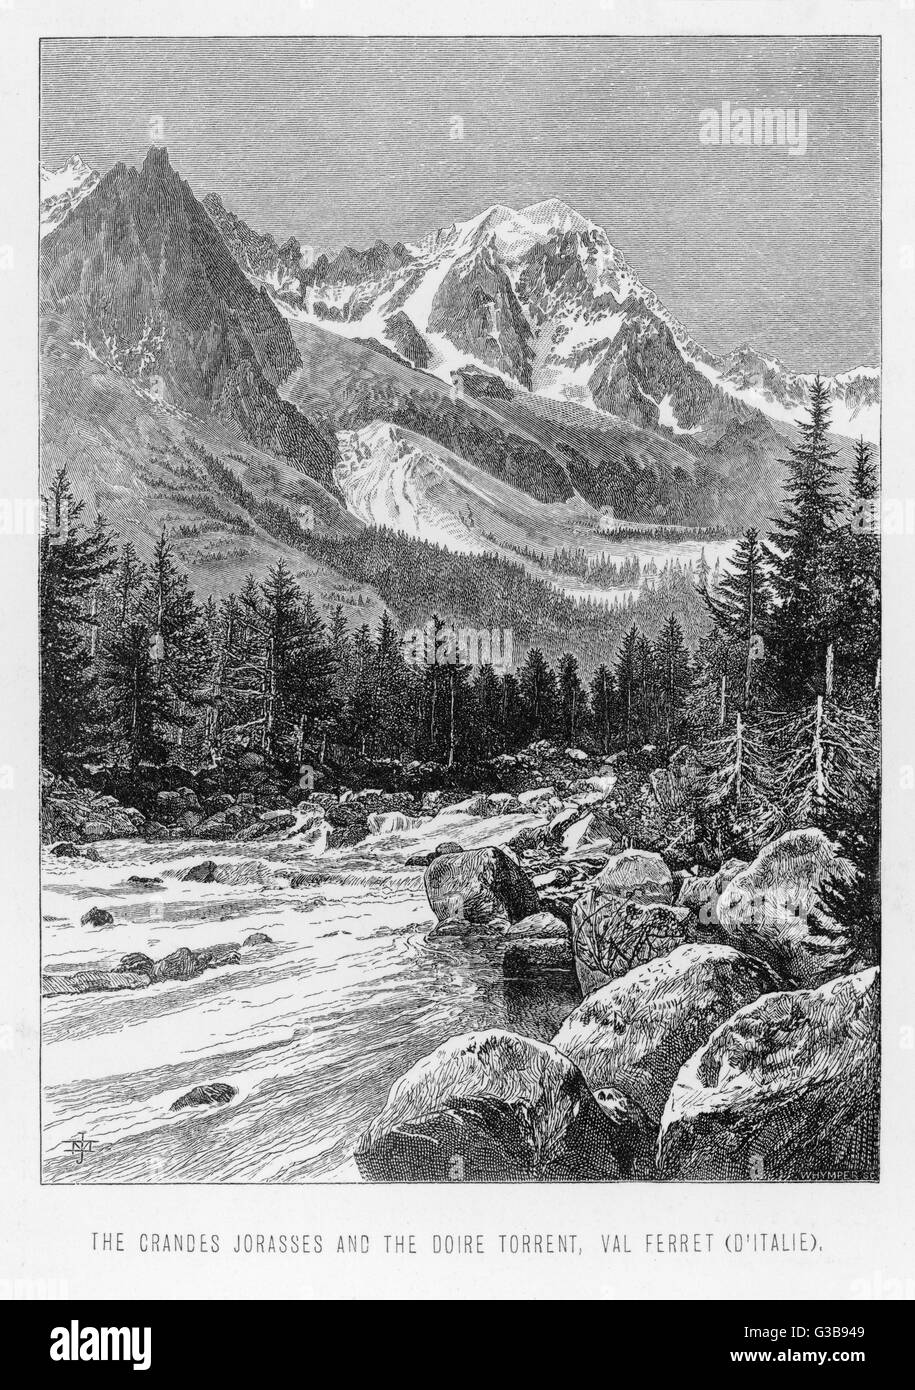 The 'Grandes Jorasses'          Date: Nineteenth century - Stock Image